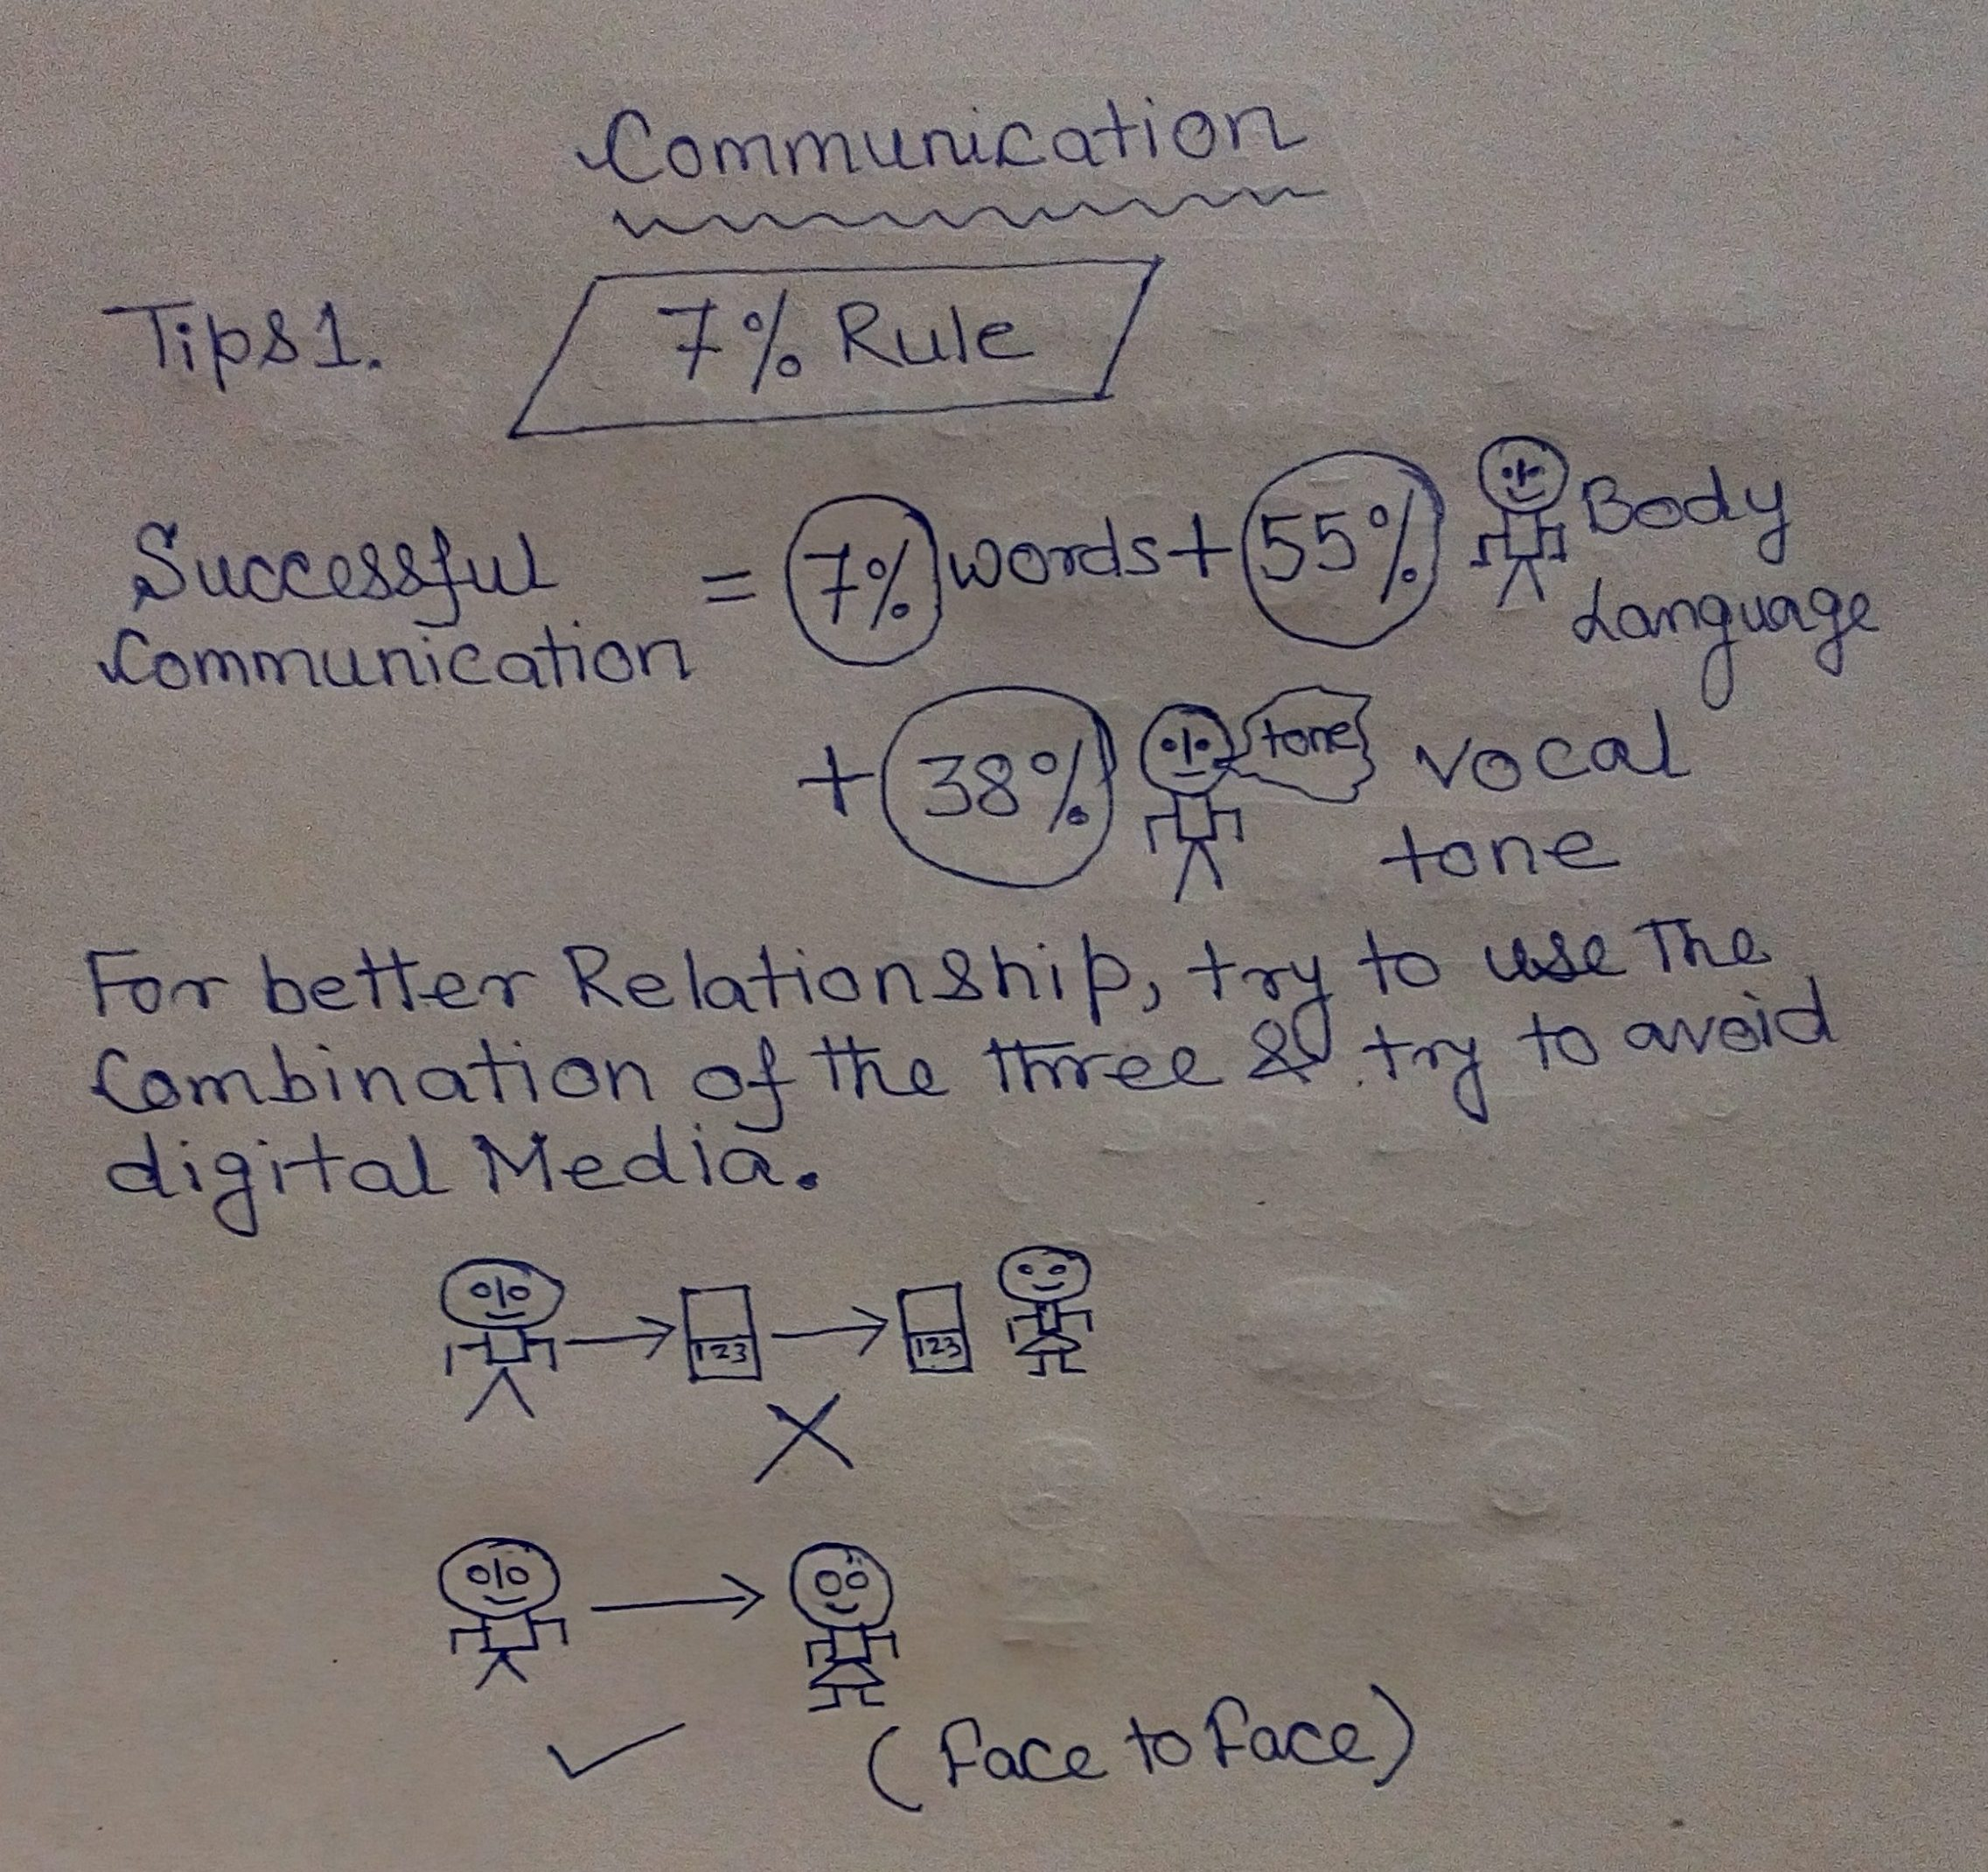 Communication_Tips_One